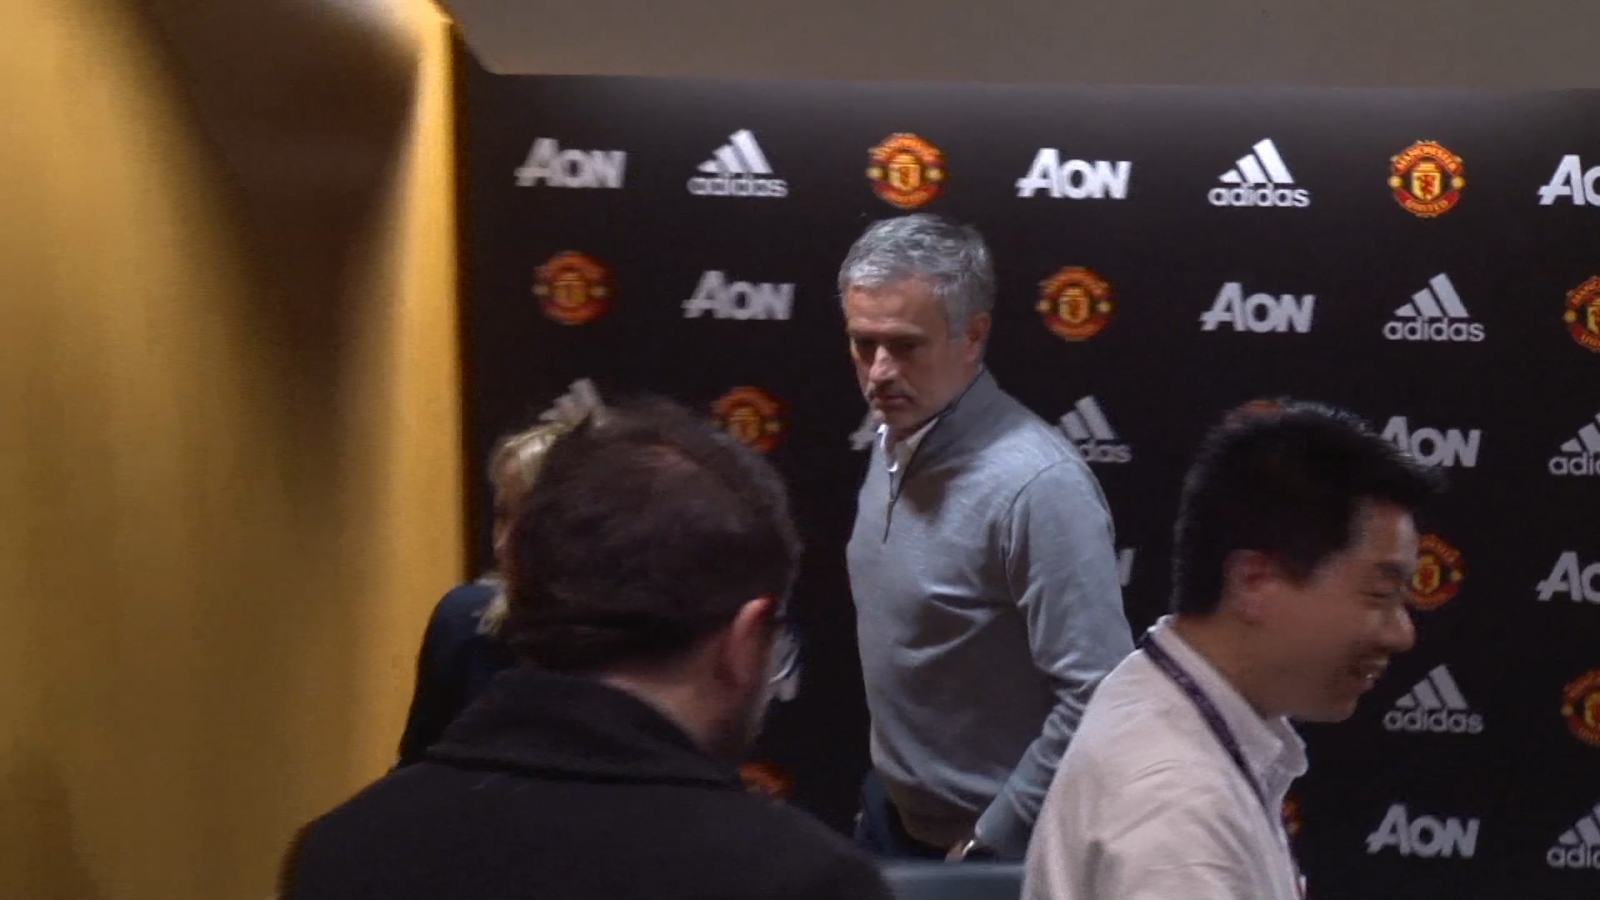 Watch Jose Mourinho's twenty-second press conference